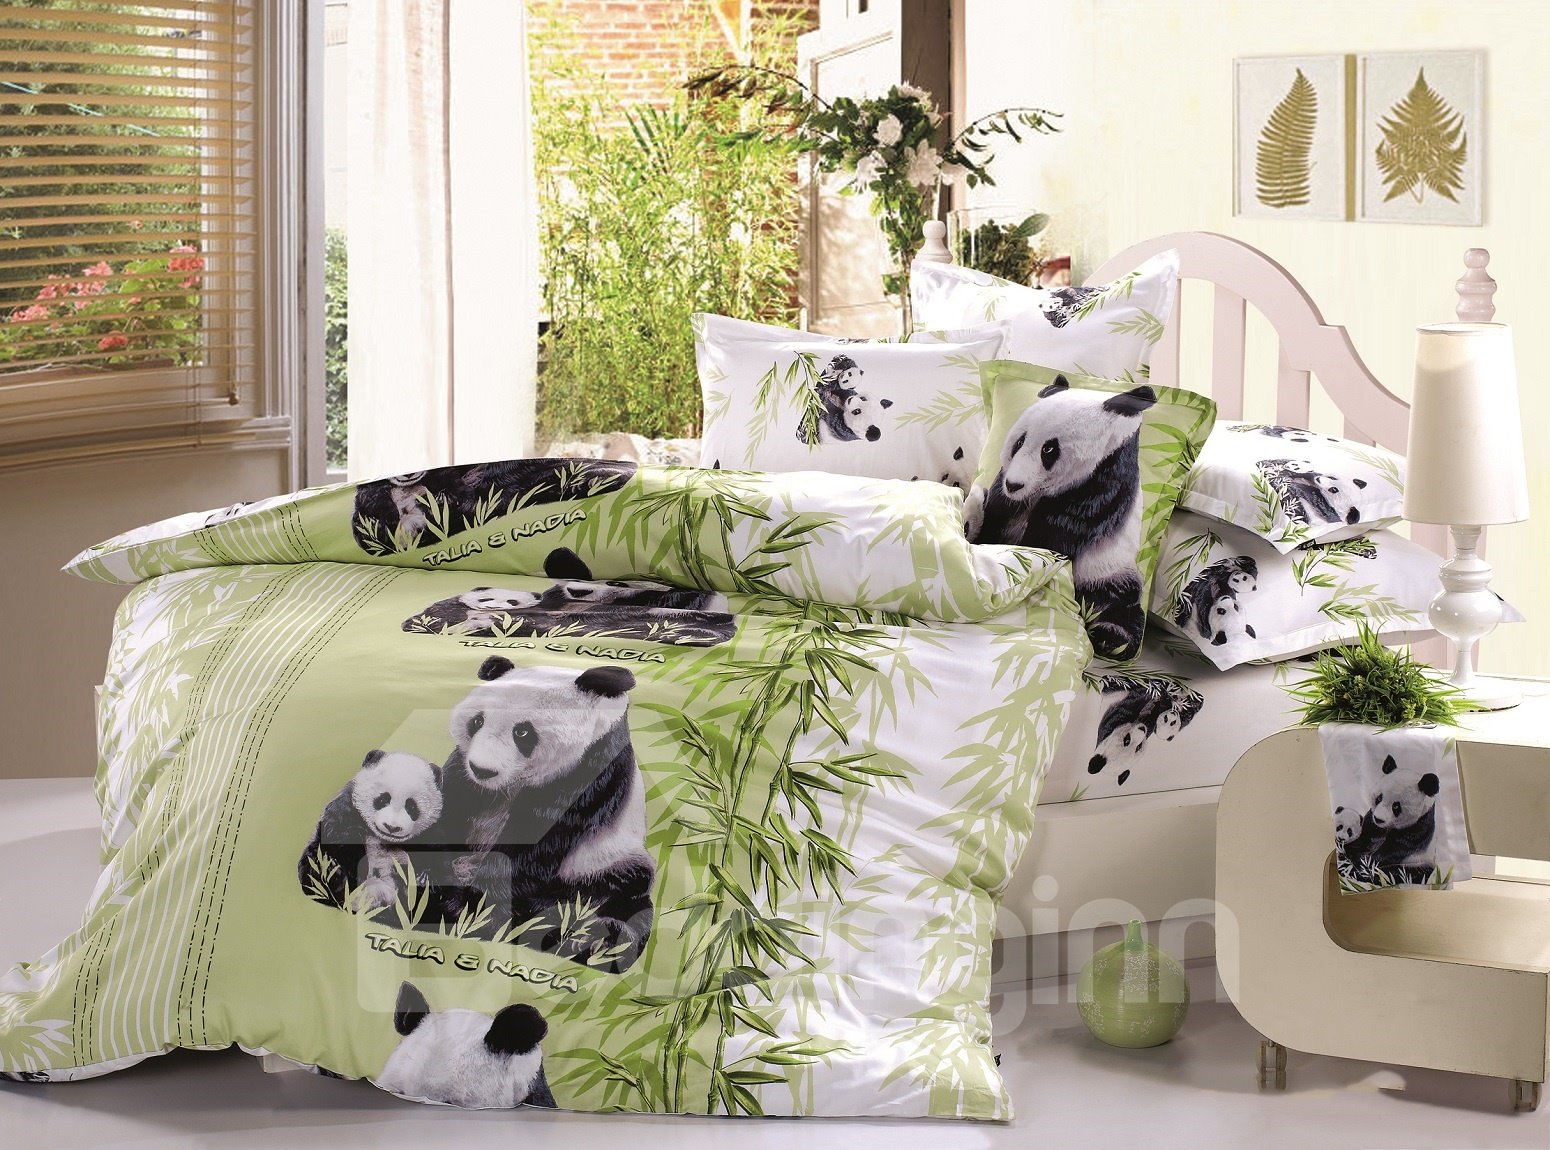 New Arrival High Quality Lovely Mother and Baby Pandas Print 4 Piece Bedding Sets